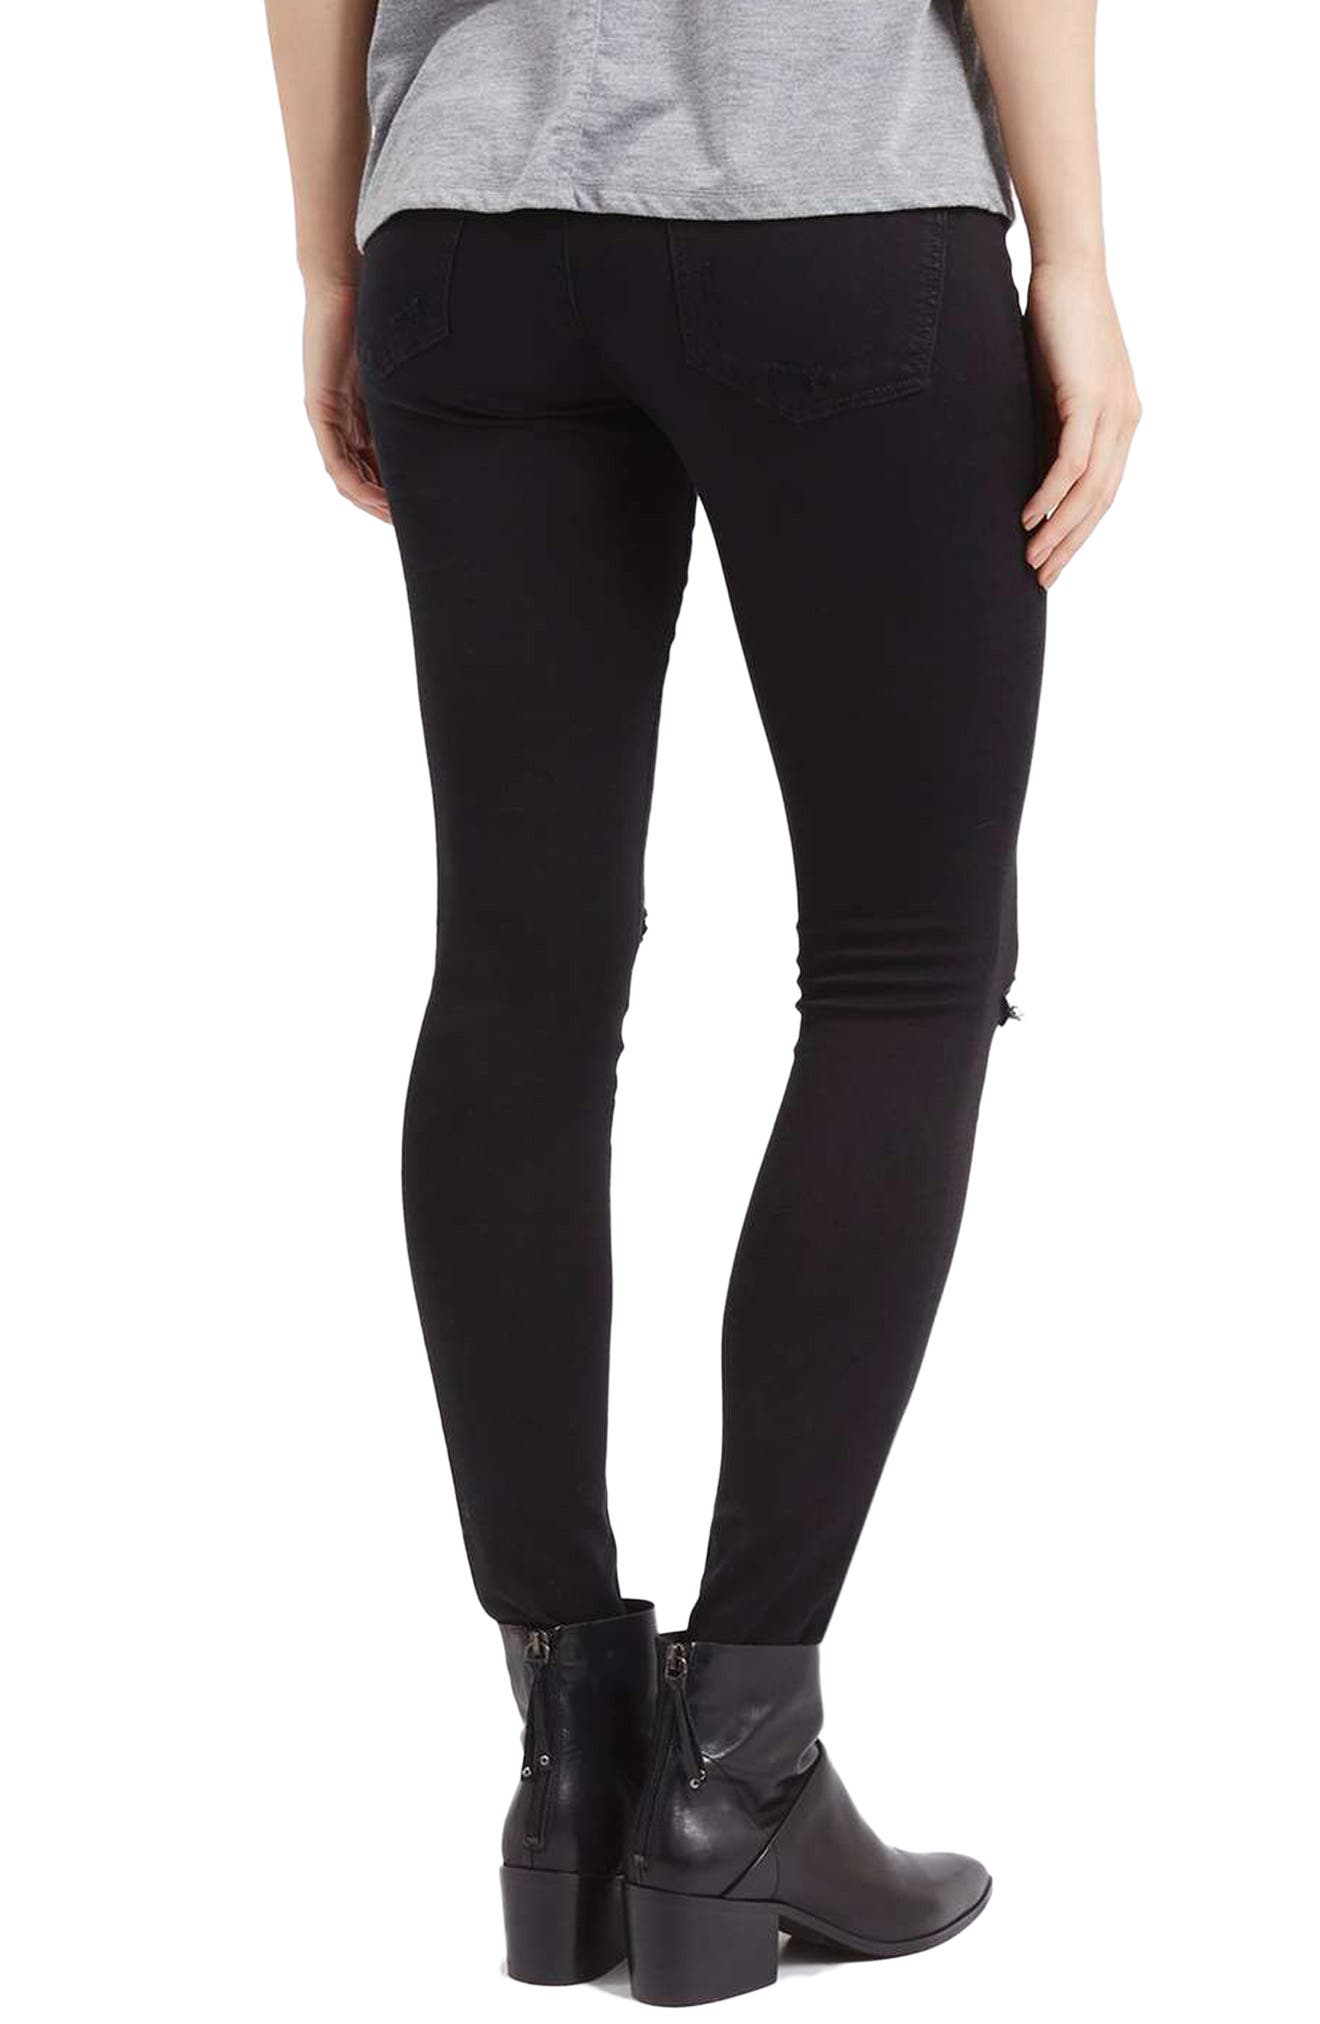 TOPSHOP, Moto Leigh Ripped Skinny Jeans, Alternate thumbnail 2, color, 001